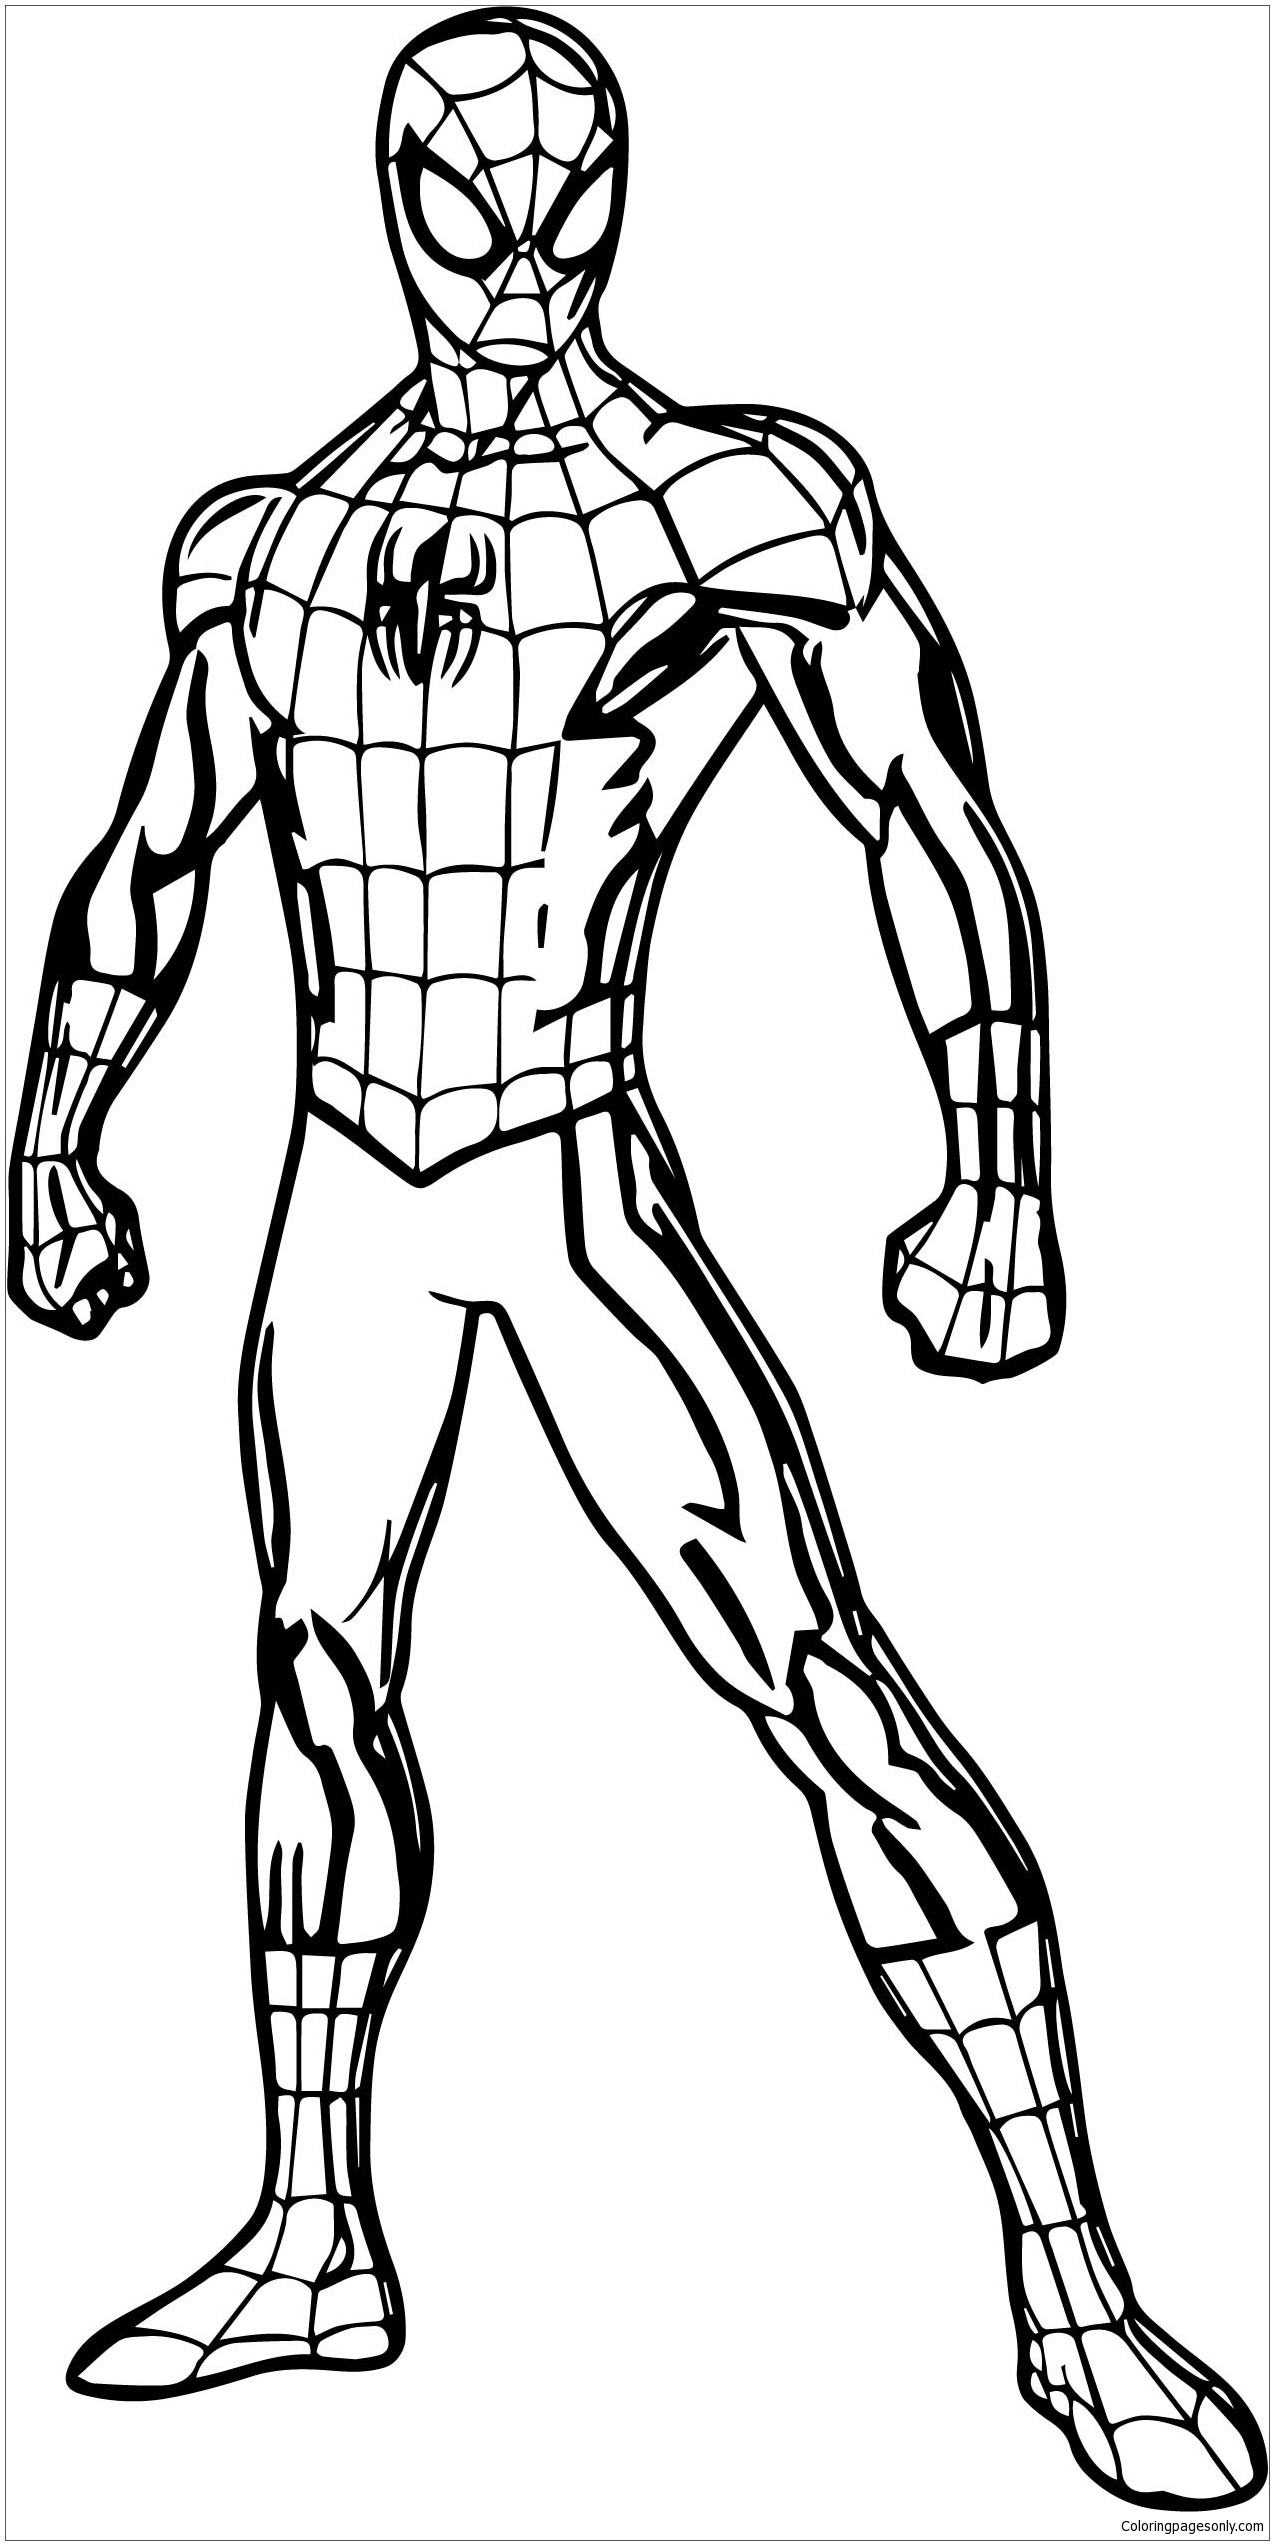 Spider Man Pose Coloring Page Free Coloring Pages Online